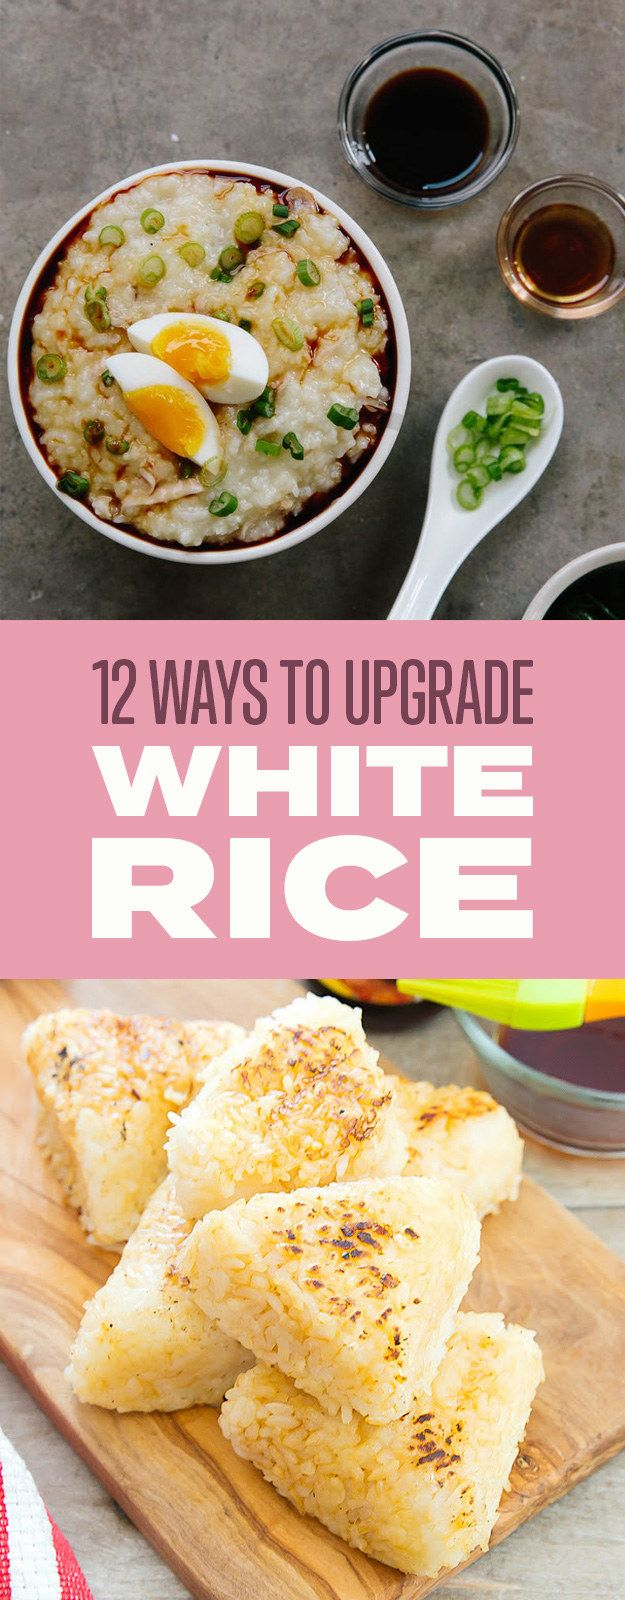 12 Ways To Cook With Rice That You Probably Haven't Tried Yet #whitericerecipes